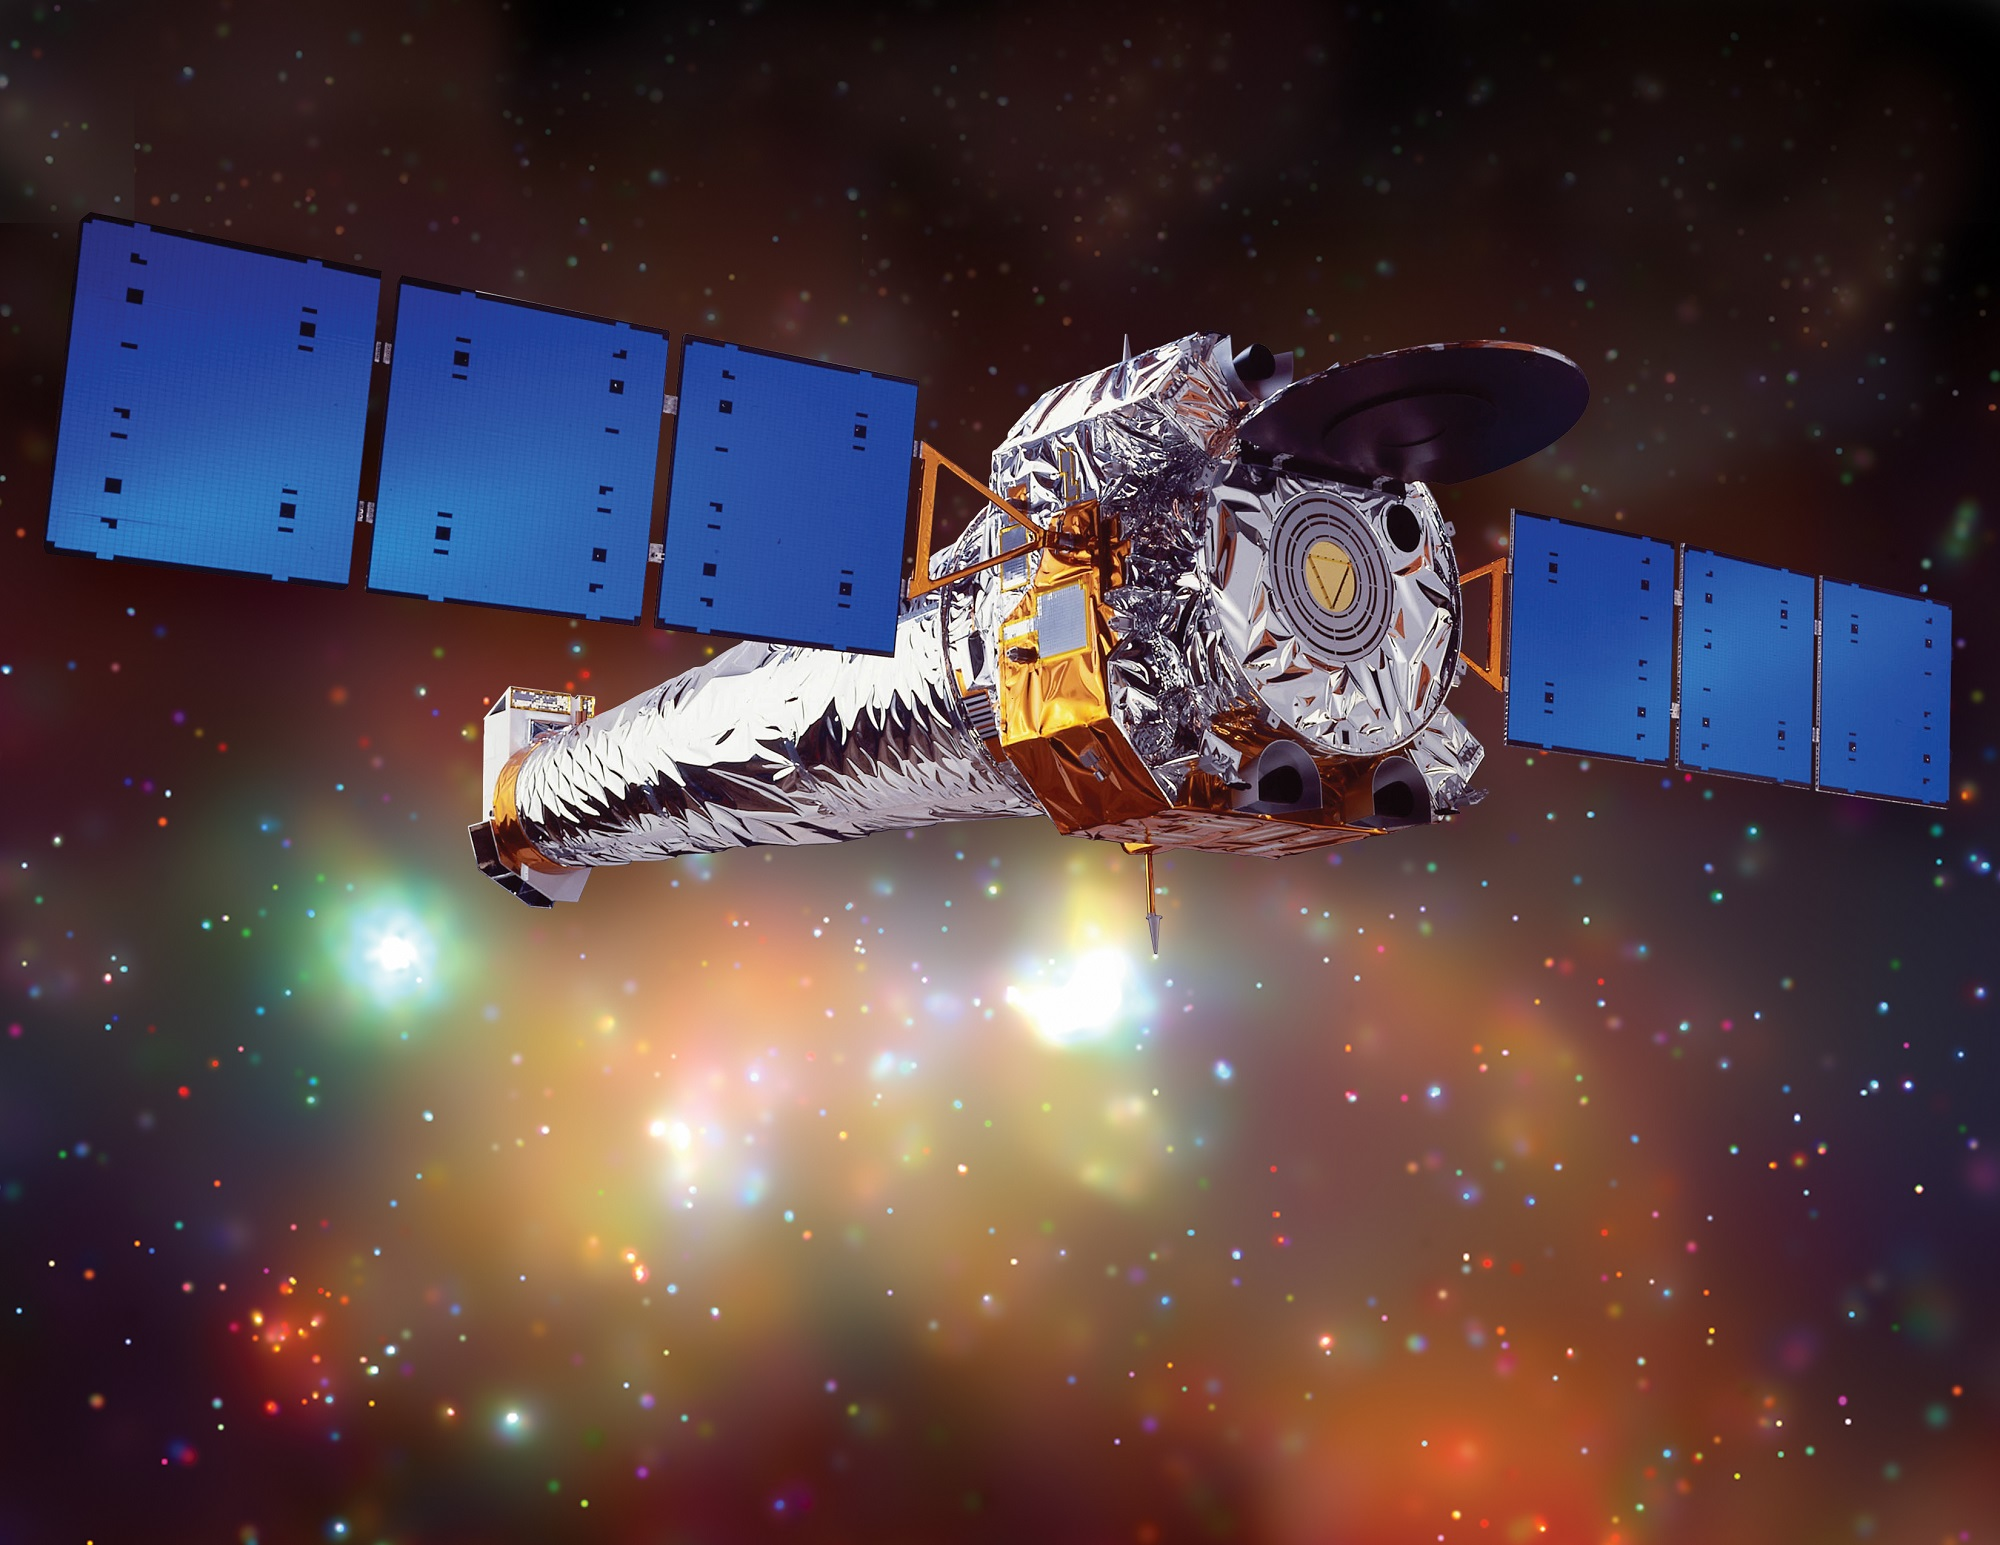 Artist illustration of the Chandra X-ray Observatory, the most sensitive X-ray telescope ever built. Credit: NASA/CXC/NGST